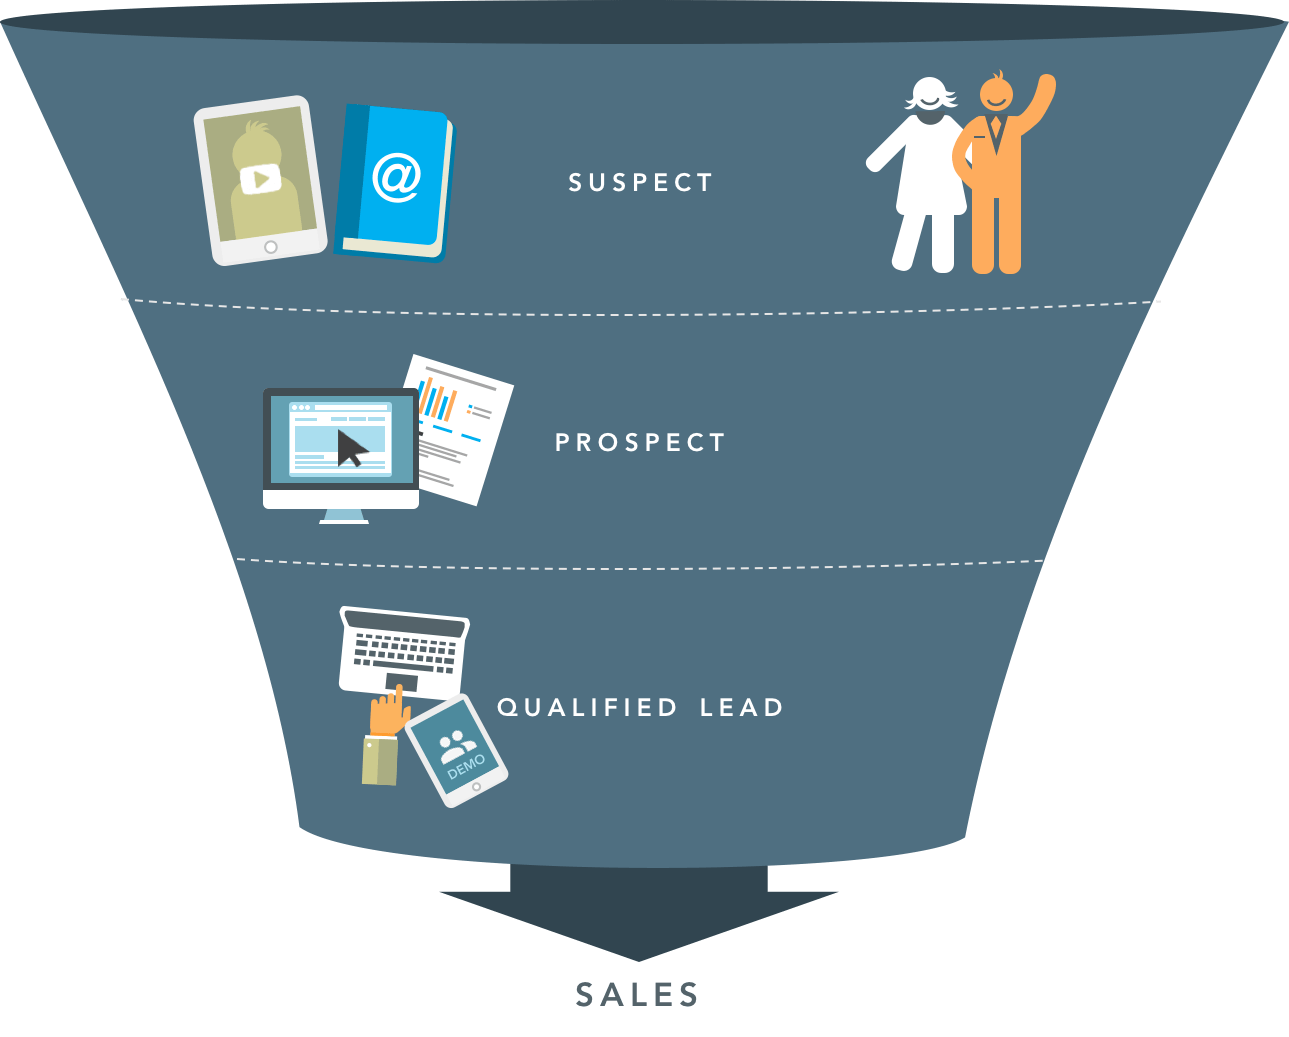 The sales funnel represents the different stages of a buying process.